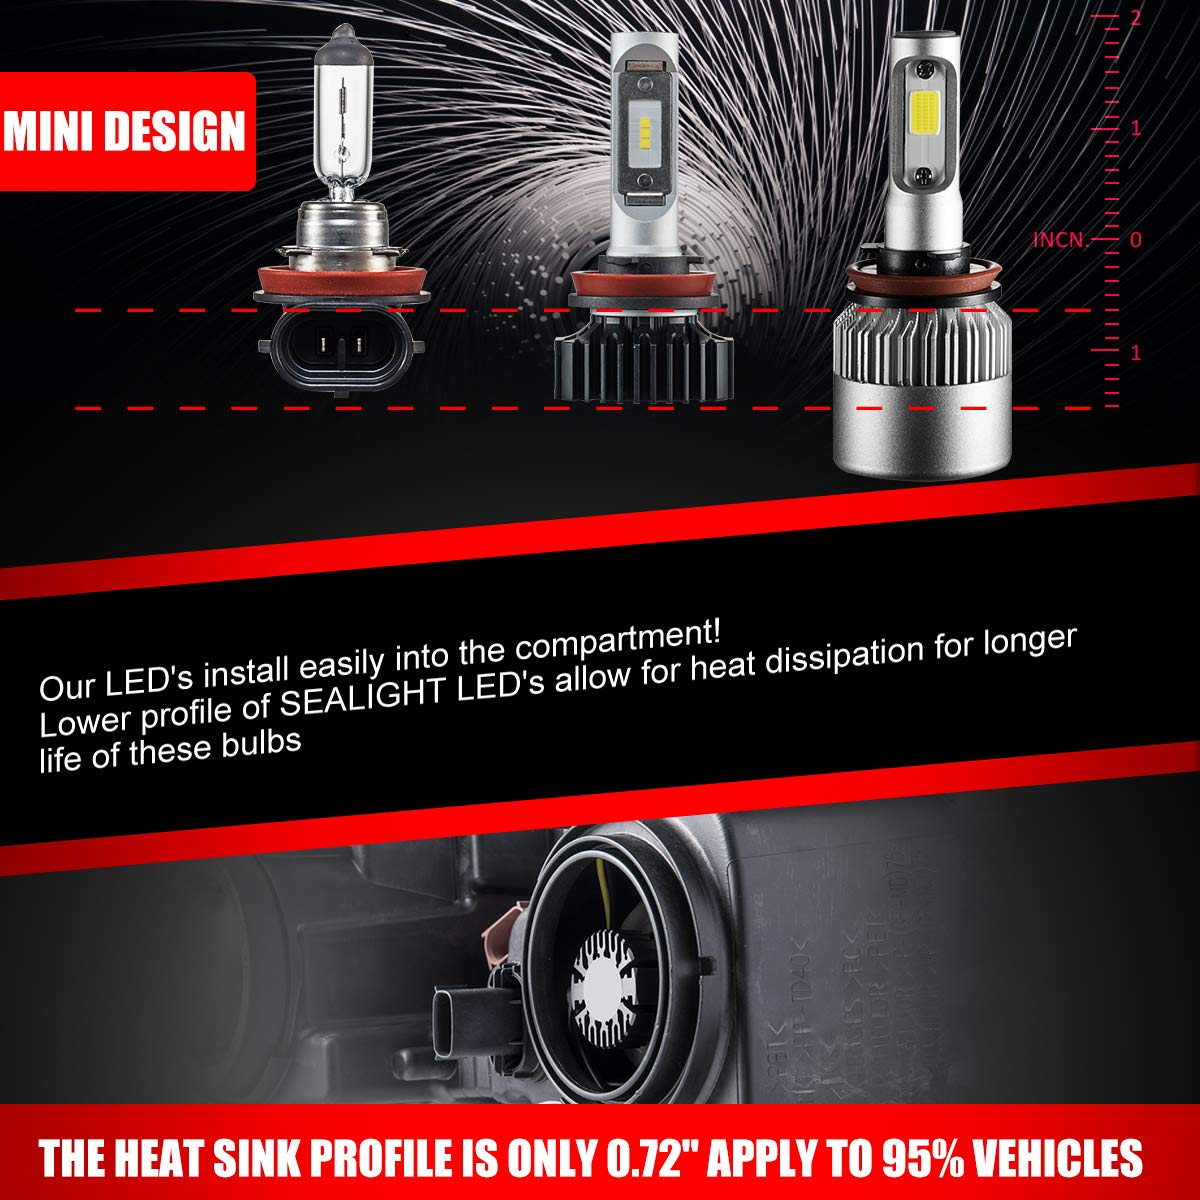 9006//HB4 LED Headlight Bulbs Conversion Kit 6000LM 6000K Xenon White DOT Approved 1 Yr Warranty Pack of 2 SEALIGHT X1 Series 12xCSP Chips